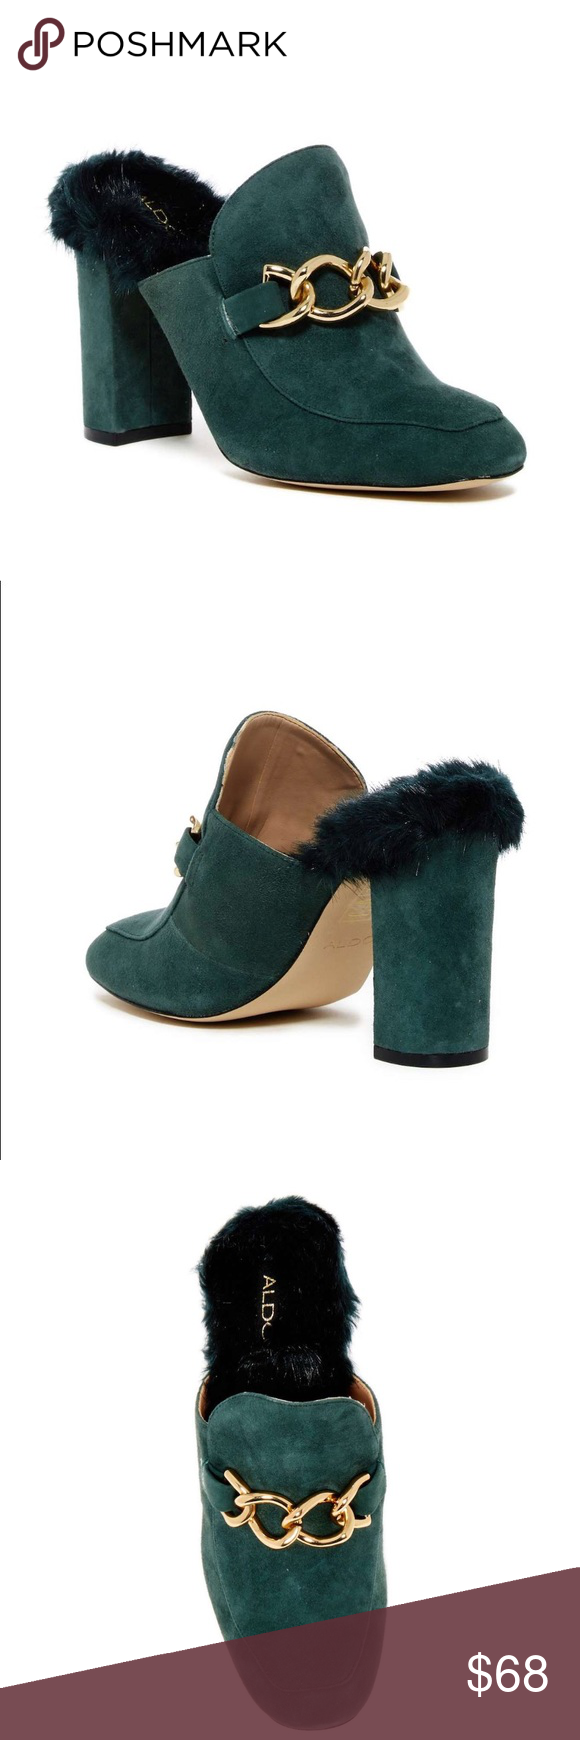 cf3d29030ec Aldo Umarella Faux Fur Lined Loafer Mule 8 New New with box Forest green  color Super cute SR(13) Aldo Shoes Mules   Clogs